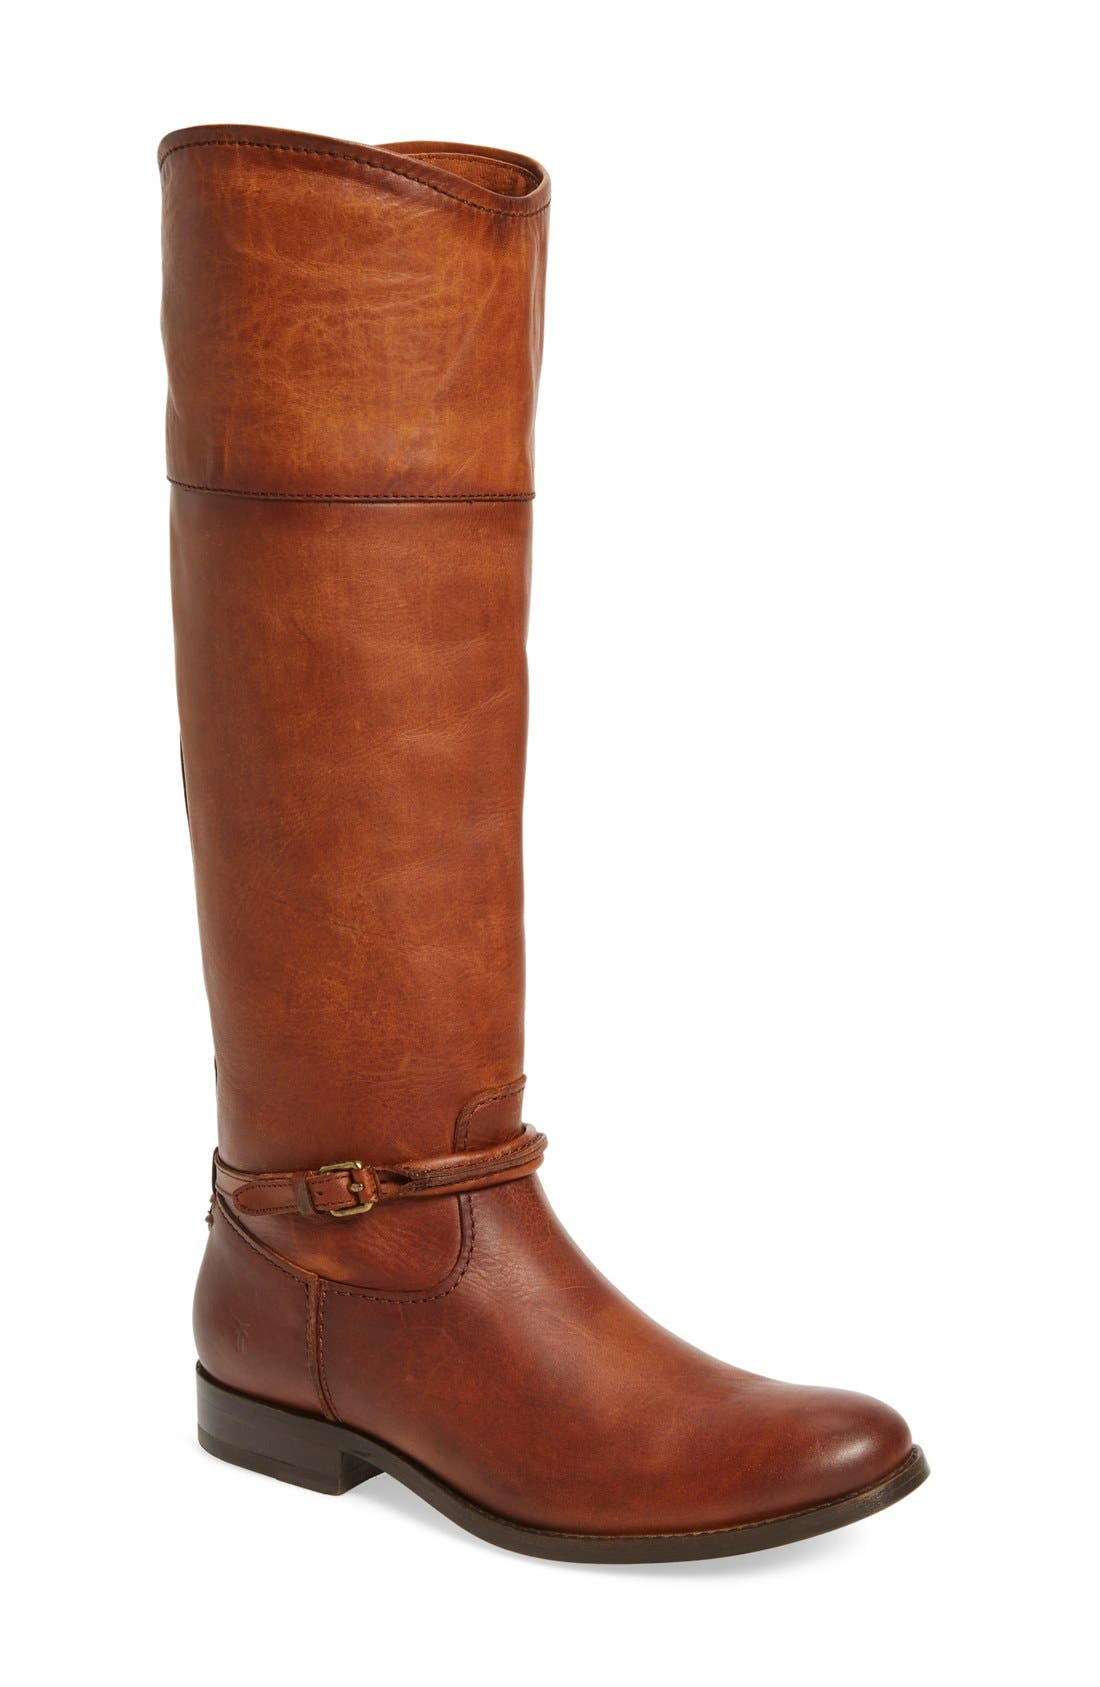 Alternate Image 1 Selected - Frye Melissa Seam Boot (Women)